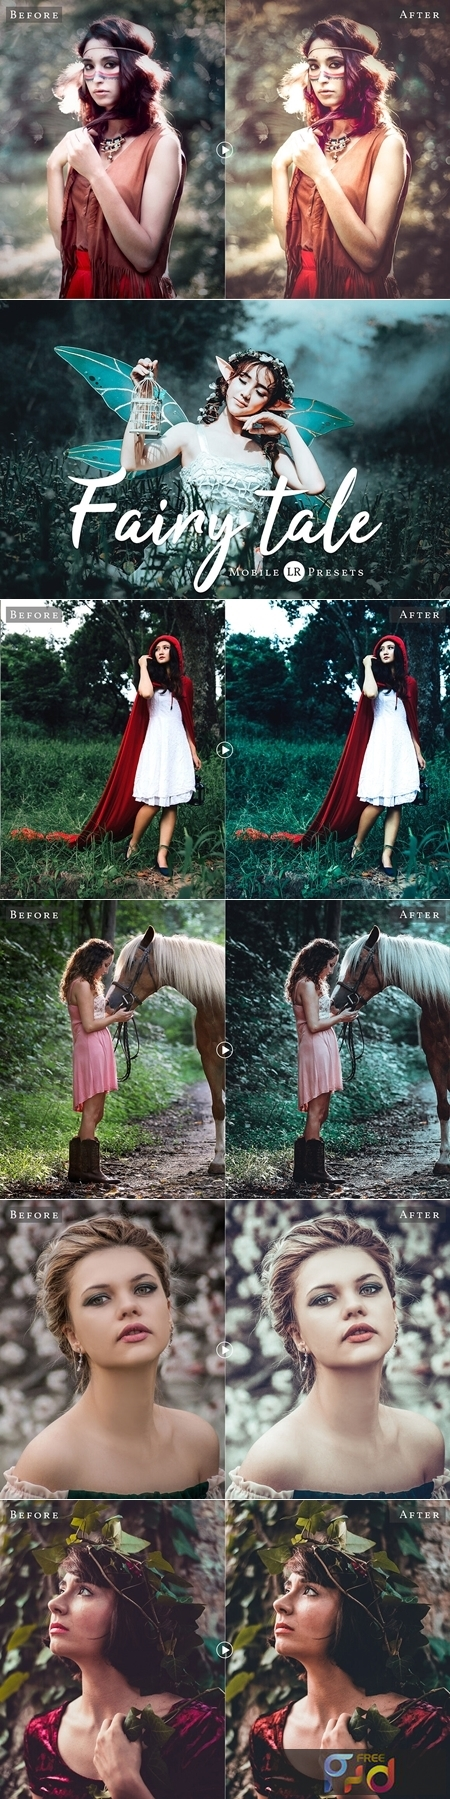 Fairytale Mobile and Desktop Lightroom Presets 3617866 1